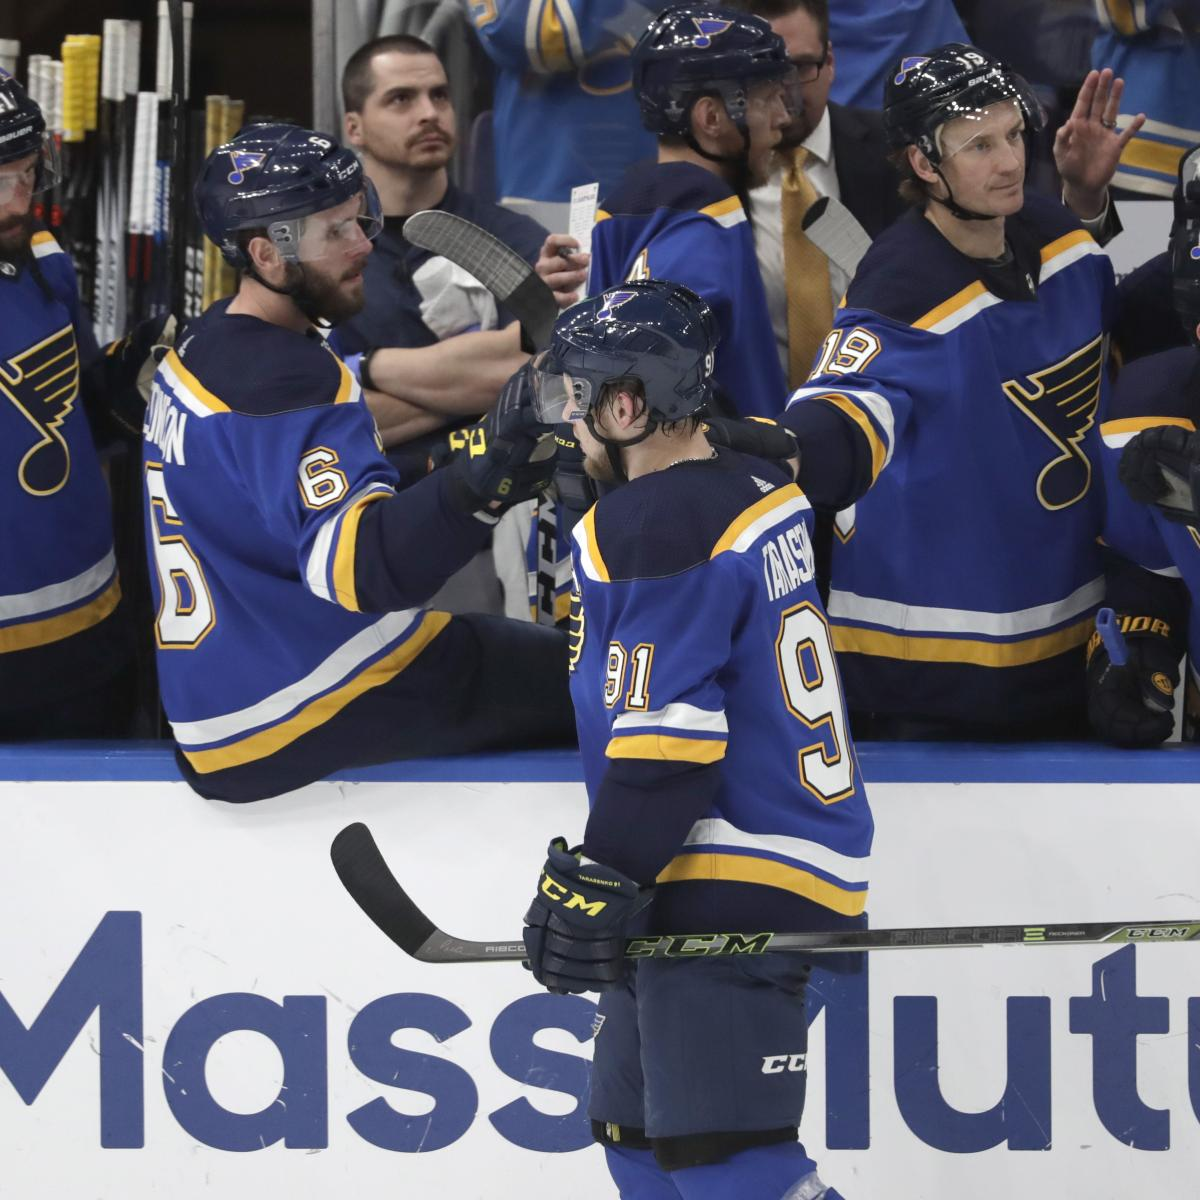 NHL Stanley Cup Final 2019: Odds, TV Schedule, Preview For